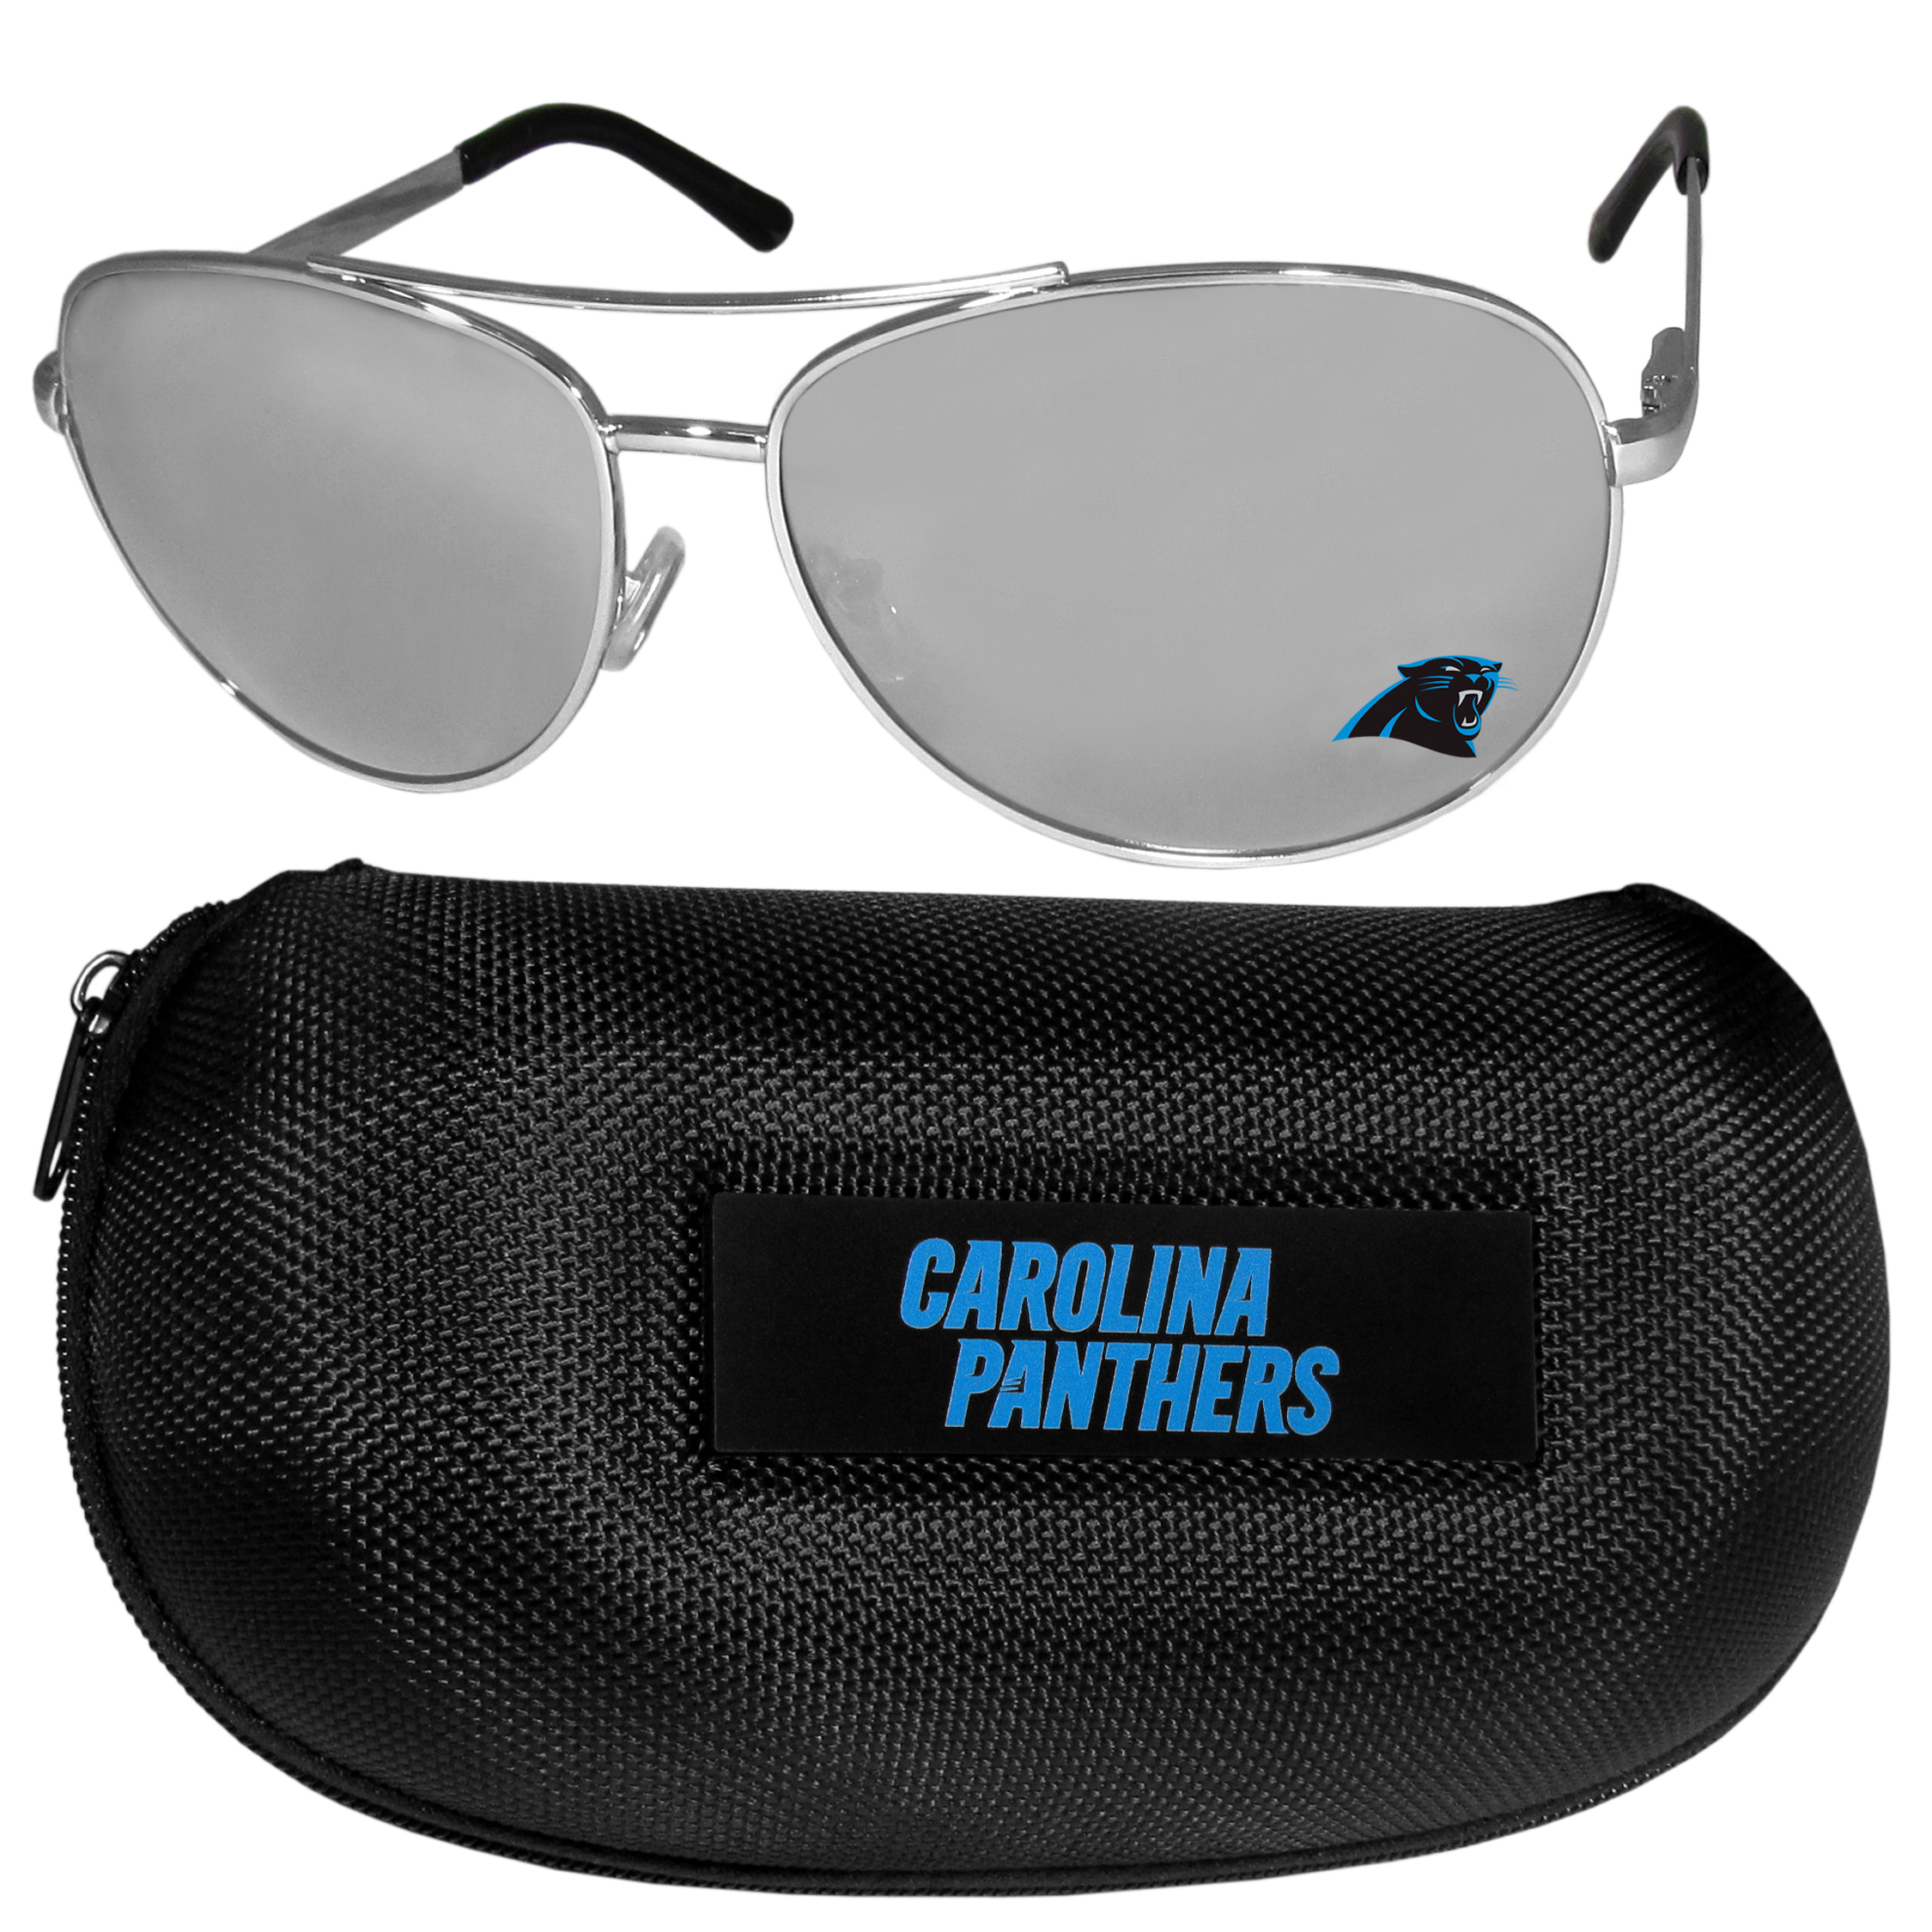 Carolina Panthers Aviator Sunglasses and Zippered Carrying Case - Aviator sunglasses are truly an iconic retro fashion statement that never goes out-of-style. Our Carolina Panthers  aviator sunglasses pair this classic look with your love of the game. The iridium coated lenses reduce glare while driving, boating, golfing and their 100% UVA/UVB rating provides you with the maximum UV protection for all your outdoor activities. A millennial favorite, these affordable designer frames are the perfect eyewear accessory for a sports fan that is looking for high-quality at an affordable price. The durable, flex hinged frames are tough enough for hiking and camping or if you prefer sun bathing by the pool or on the beach these shades will really stand the test of time. The sunglasses come with a hard shell zippered case which has a large team logo on the lid that will make even the most die-hard fan proud!